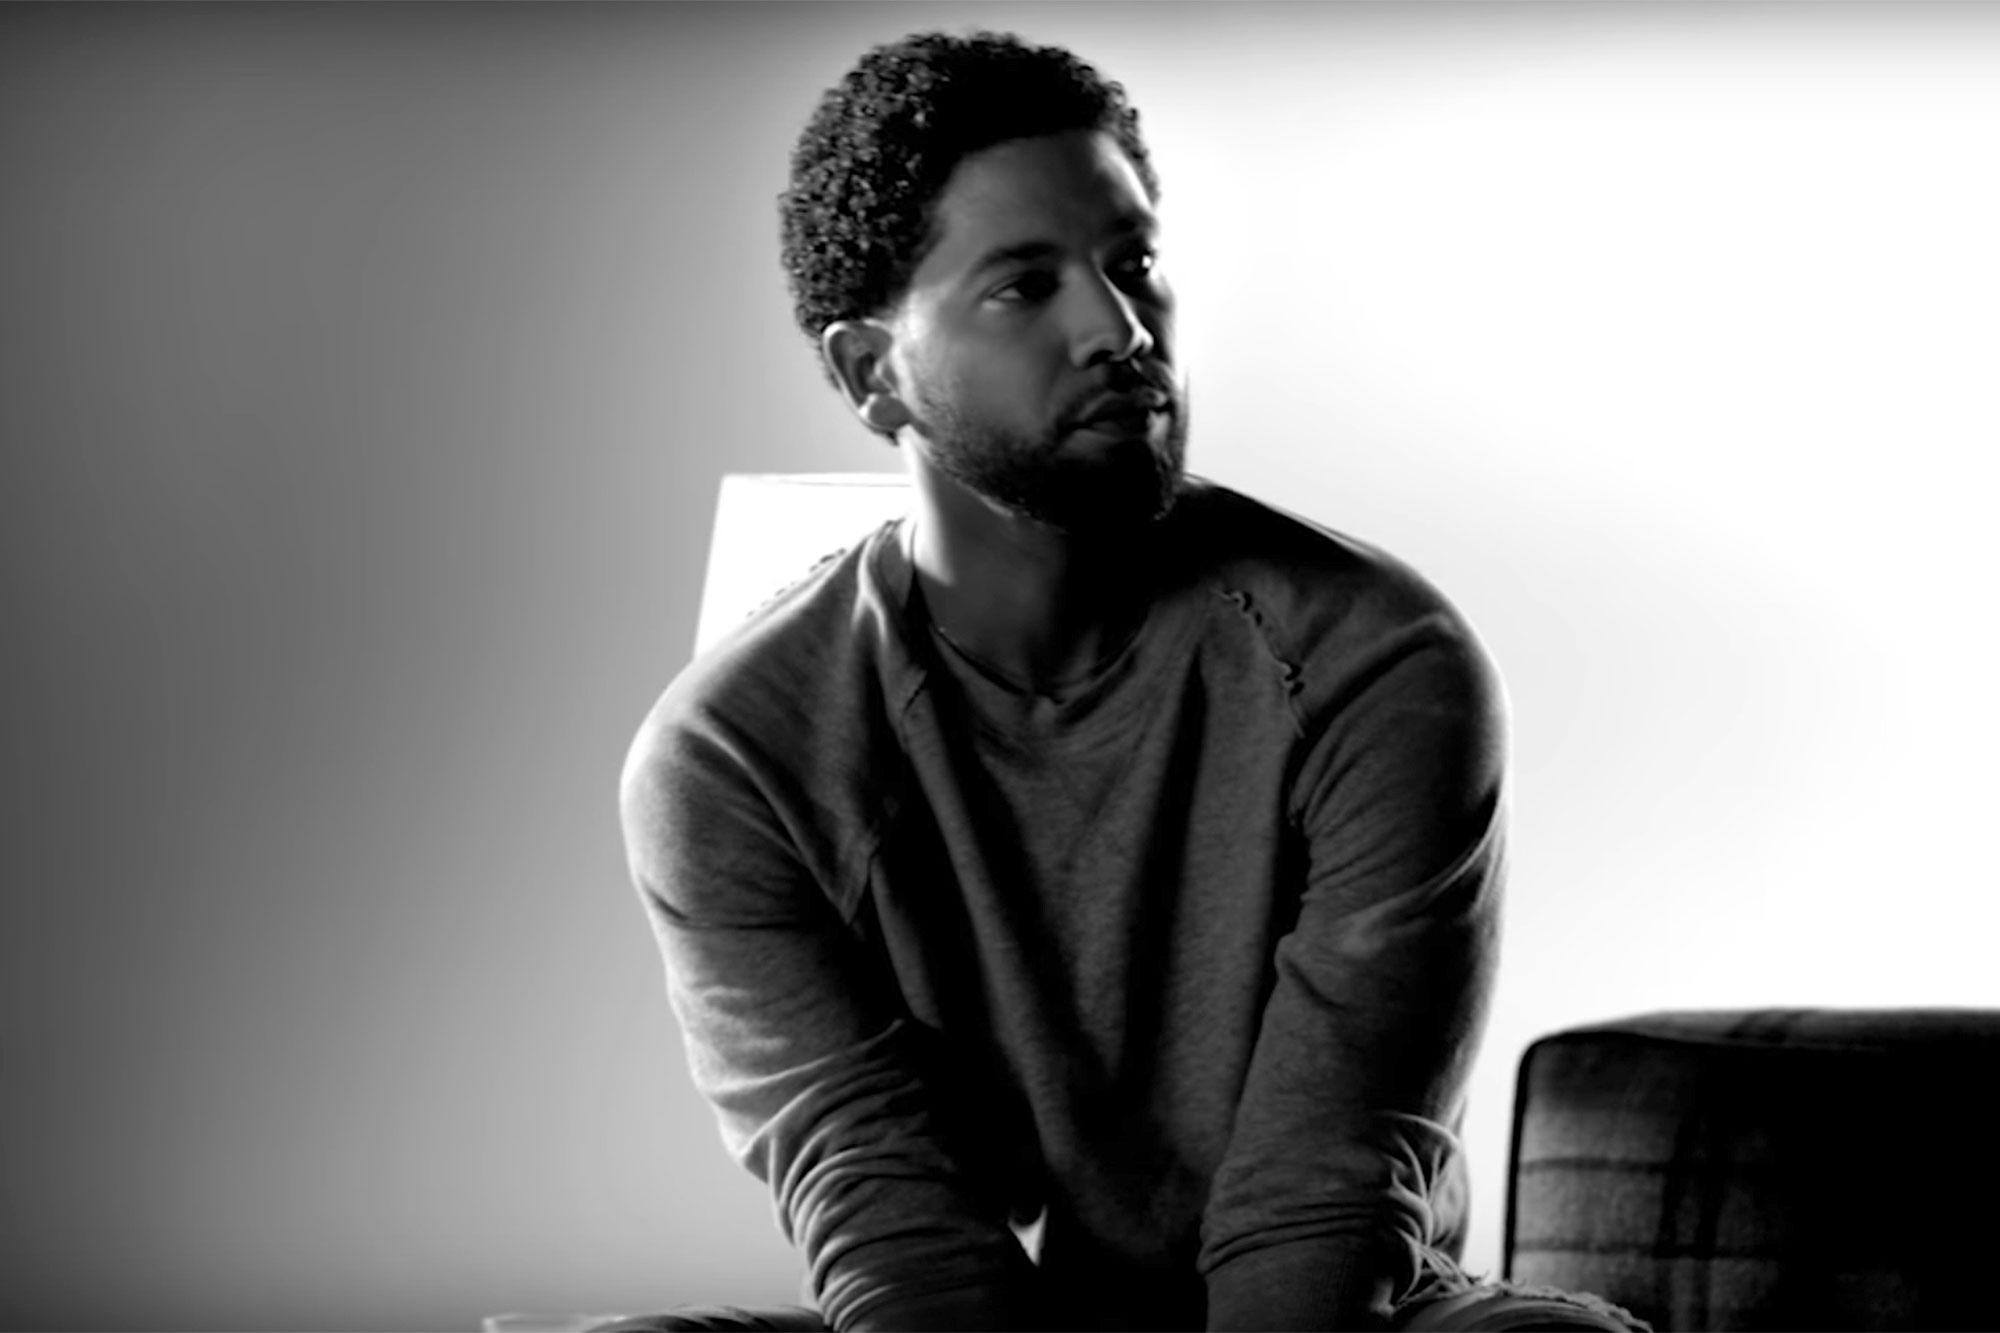 Jussie SmollettCredit: Jussie Smollett/Youtube